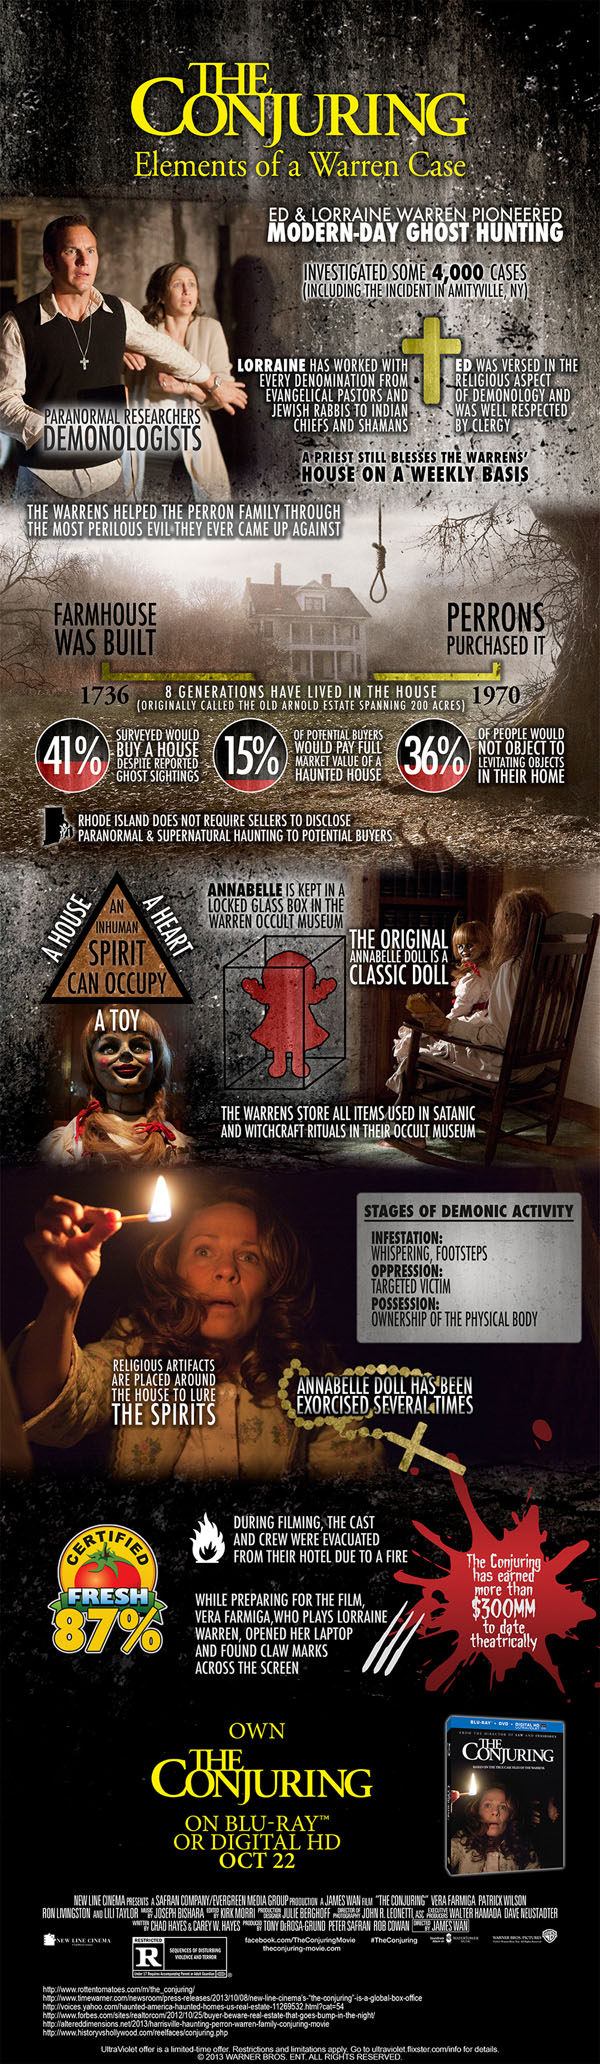 The Conjuring Infographic (click for larger image)